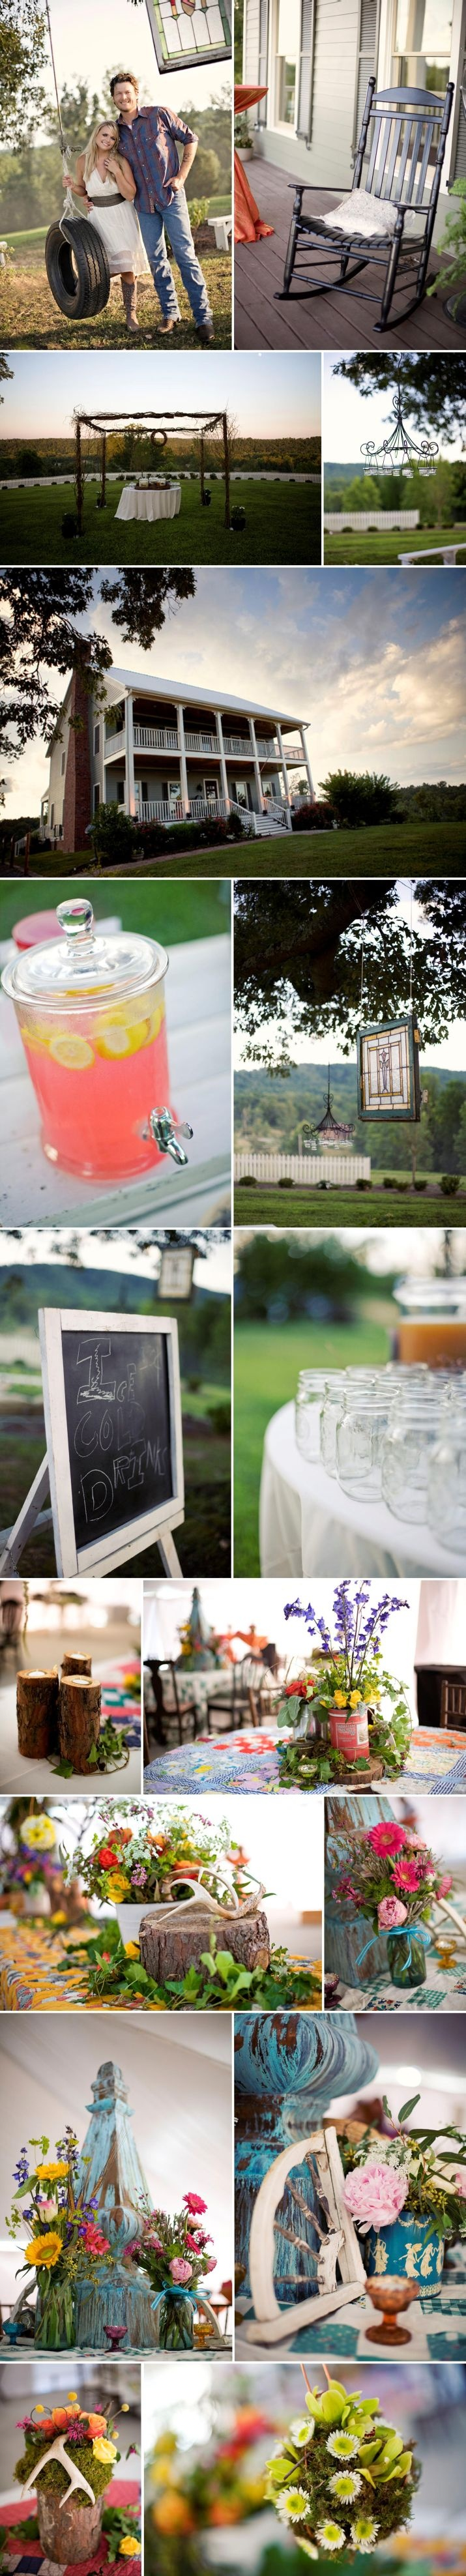 Southern Engagement Party: Miranda + Blake, Part I « Southern Weddings Magazine